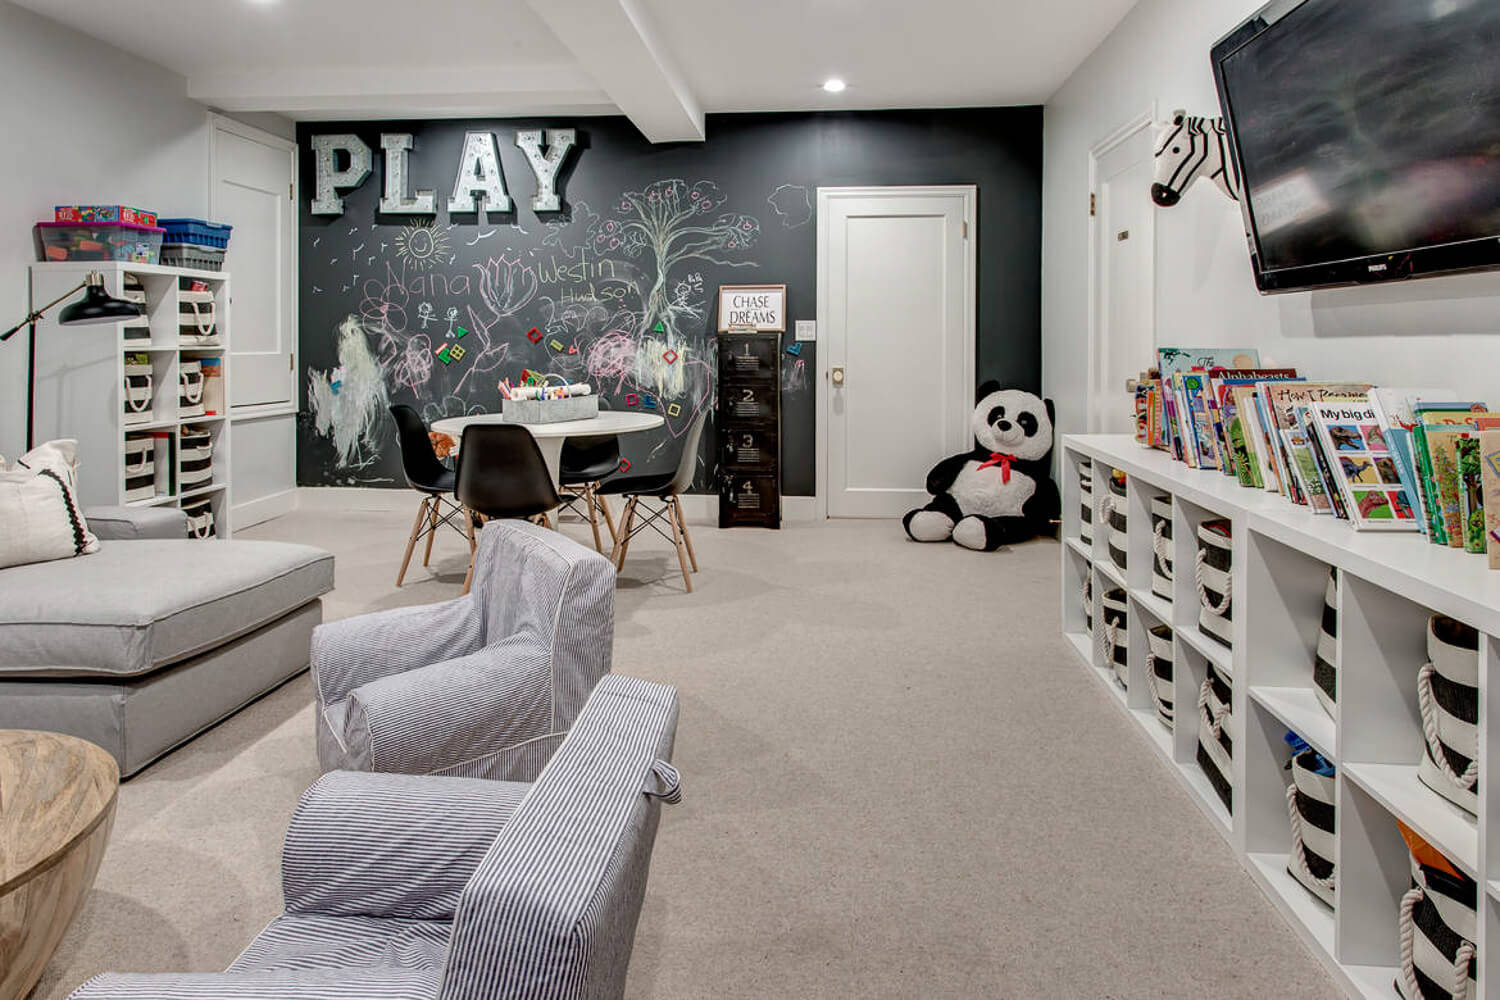 75 Beautiful Kids Room With Black Walls Pictures Ideas March 2021 Houzz